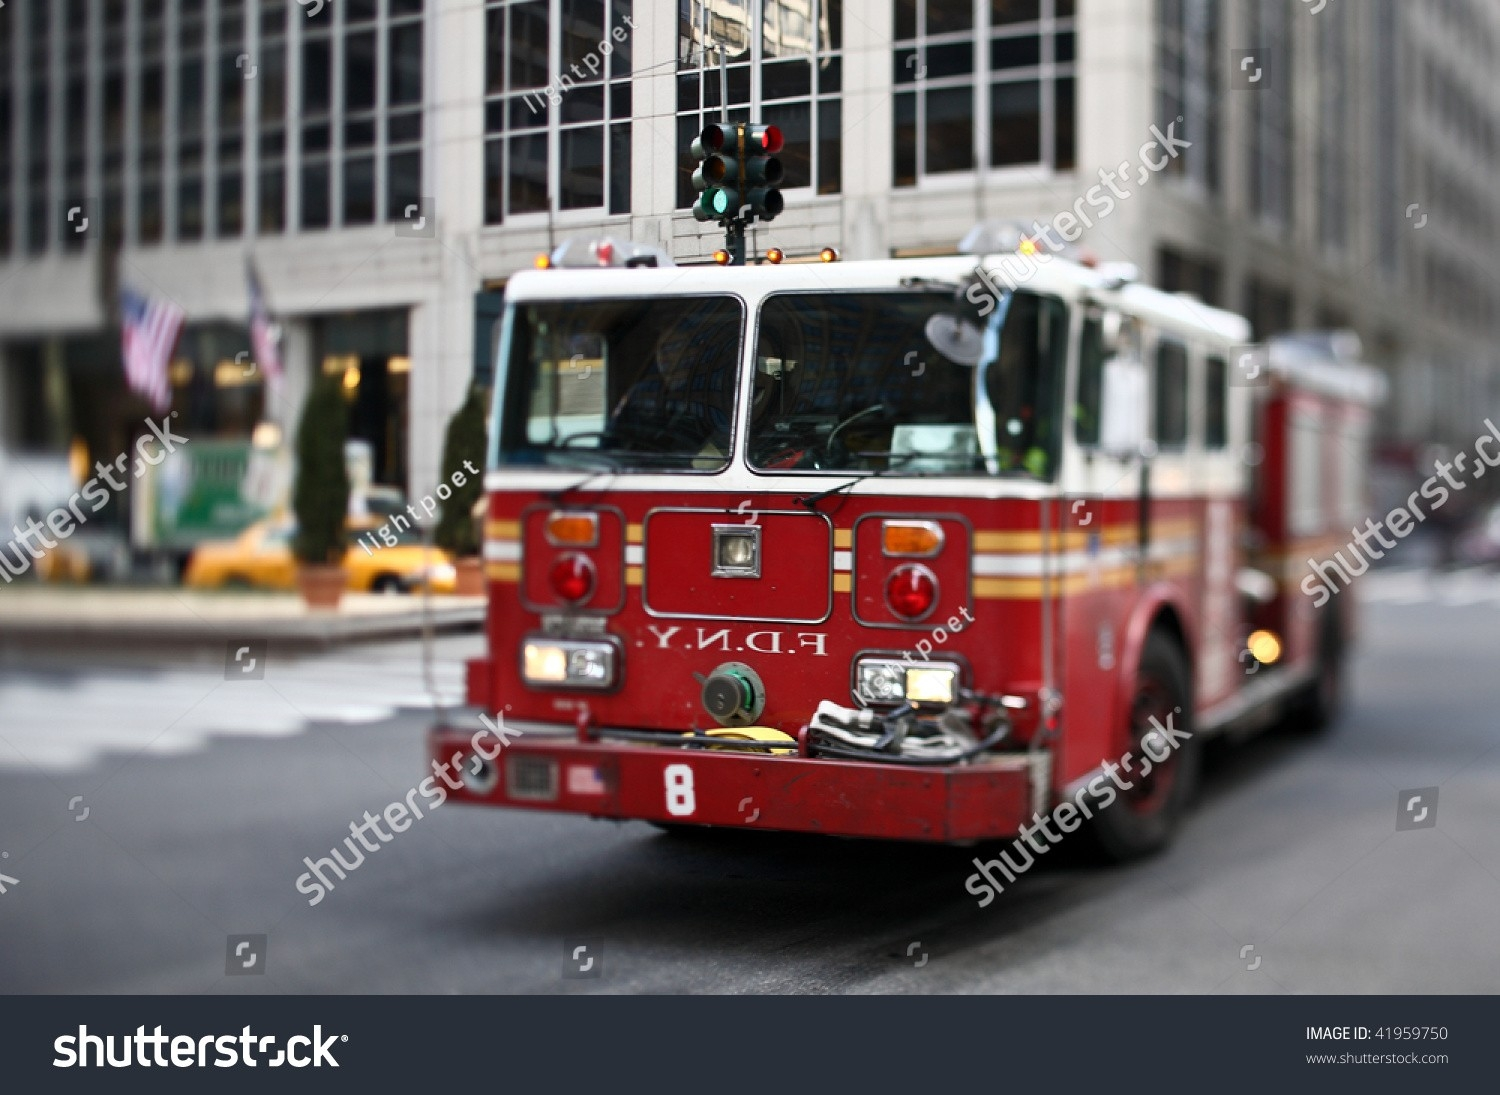 Nyfd Vehicle Midtown Manhattan Selective Focus Stock Photo  What Are The Nyfd Shifts